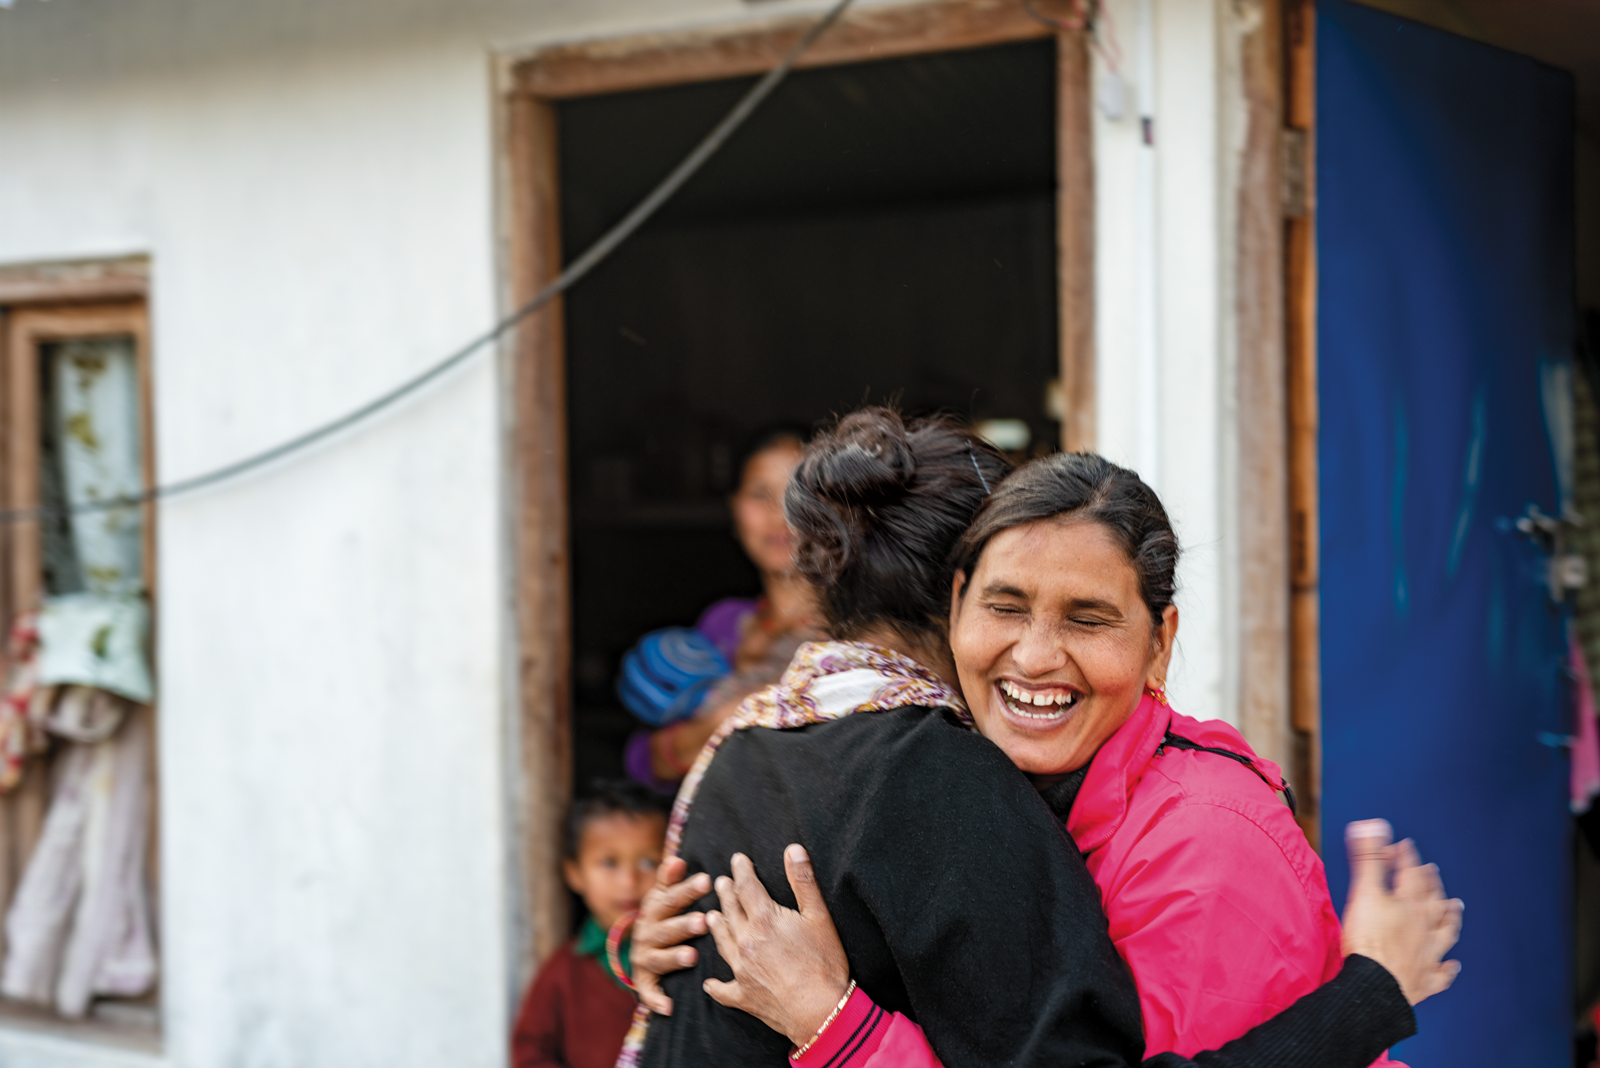 Isha Nirola, wearing a black sweater and white scarf patterned with orange and purple, is embraced by a Nepalese woman wearing a pink top with a big smile. Behind is a Nepalese woman holding a child with a toddler, standing in a doorway.